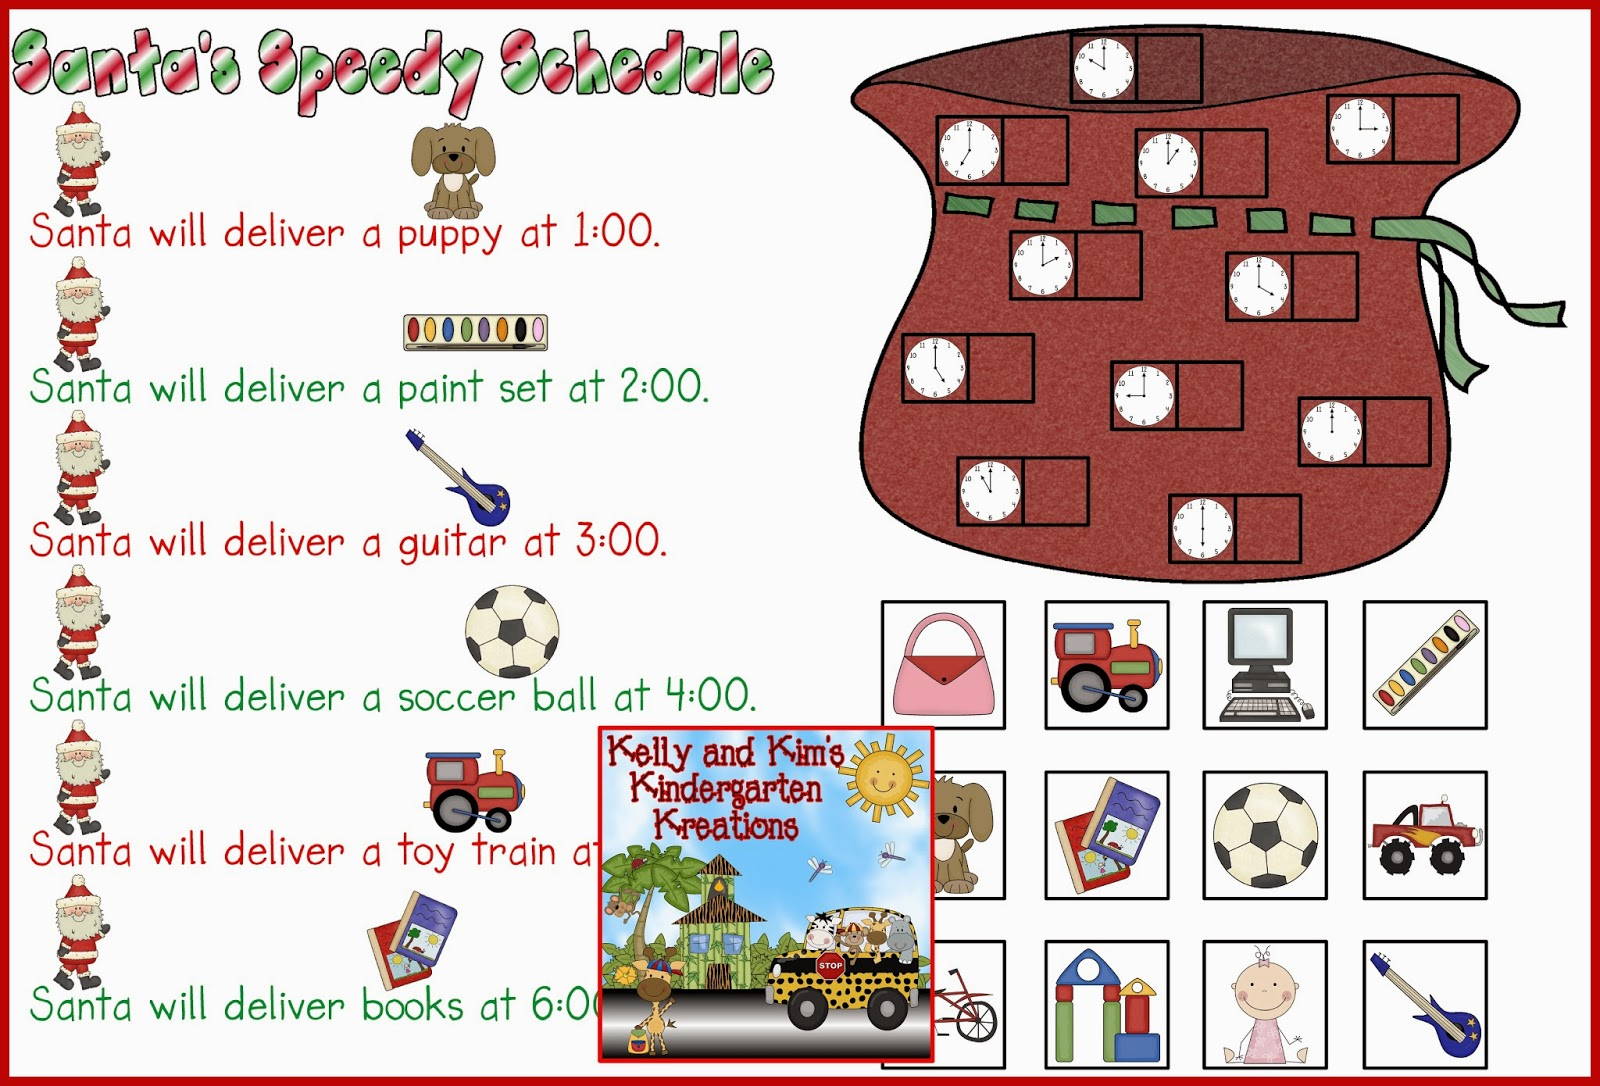 Fun Time clipart working together Kreations: and 2014 Kelly Kim's